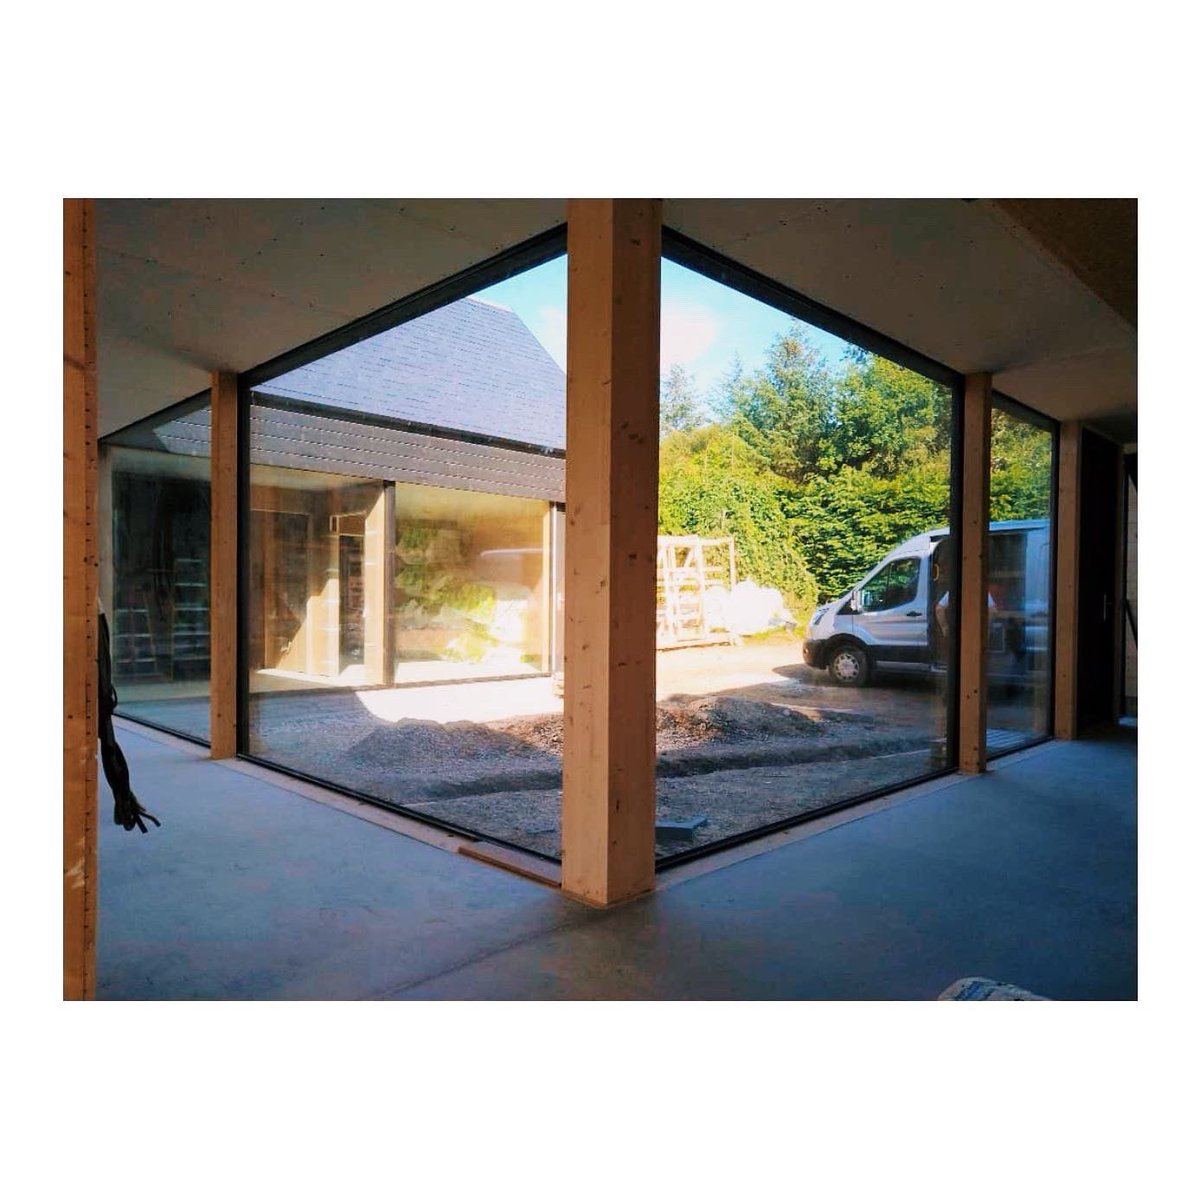 House at Culbo on The Black Isle Unser construction - Images by contractor Zucconi Carpentry - #house #blackisle #inverness #highlands #scotland #construction #house #wip #design #selfbuild #sitevisit #architectontour #brownandbrownarchitectspic.twitter.com/JFne9FSiGt